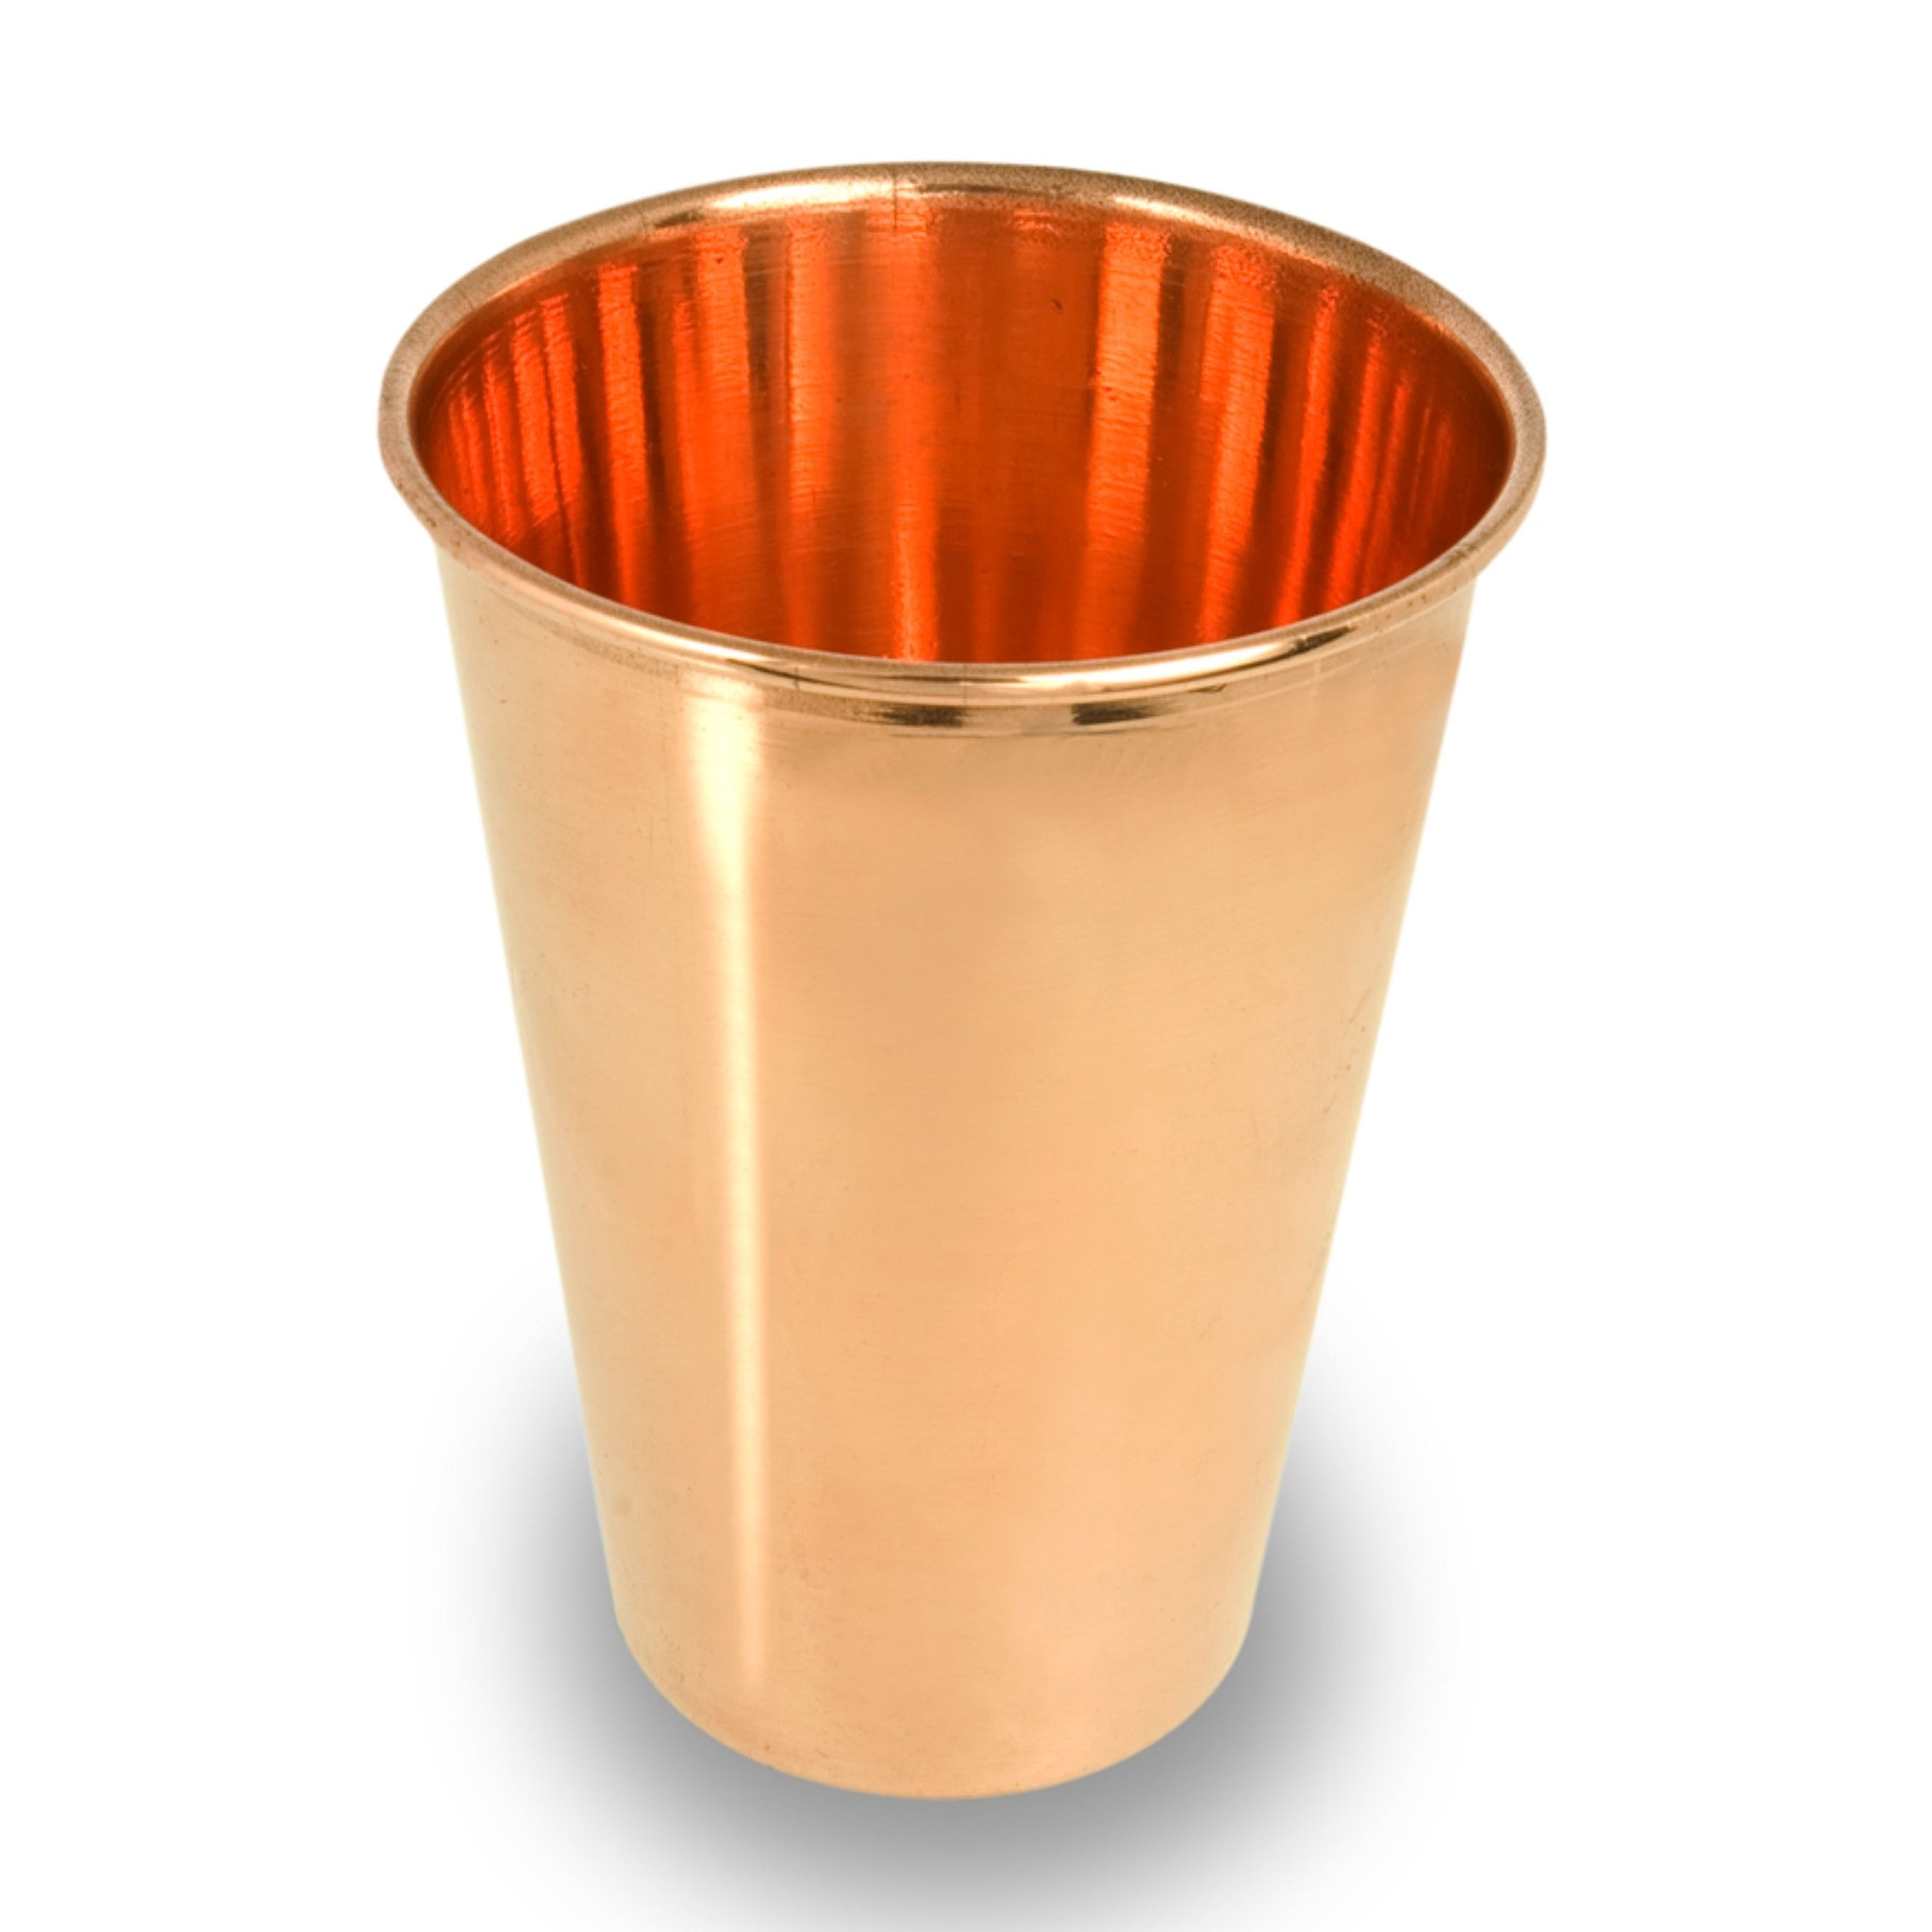 Ayurvedic pure copper drinking cup